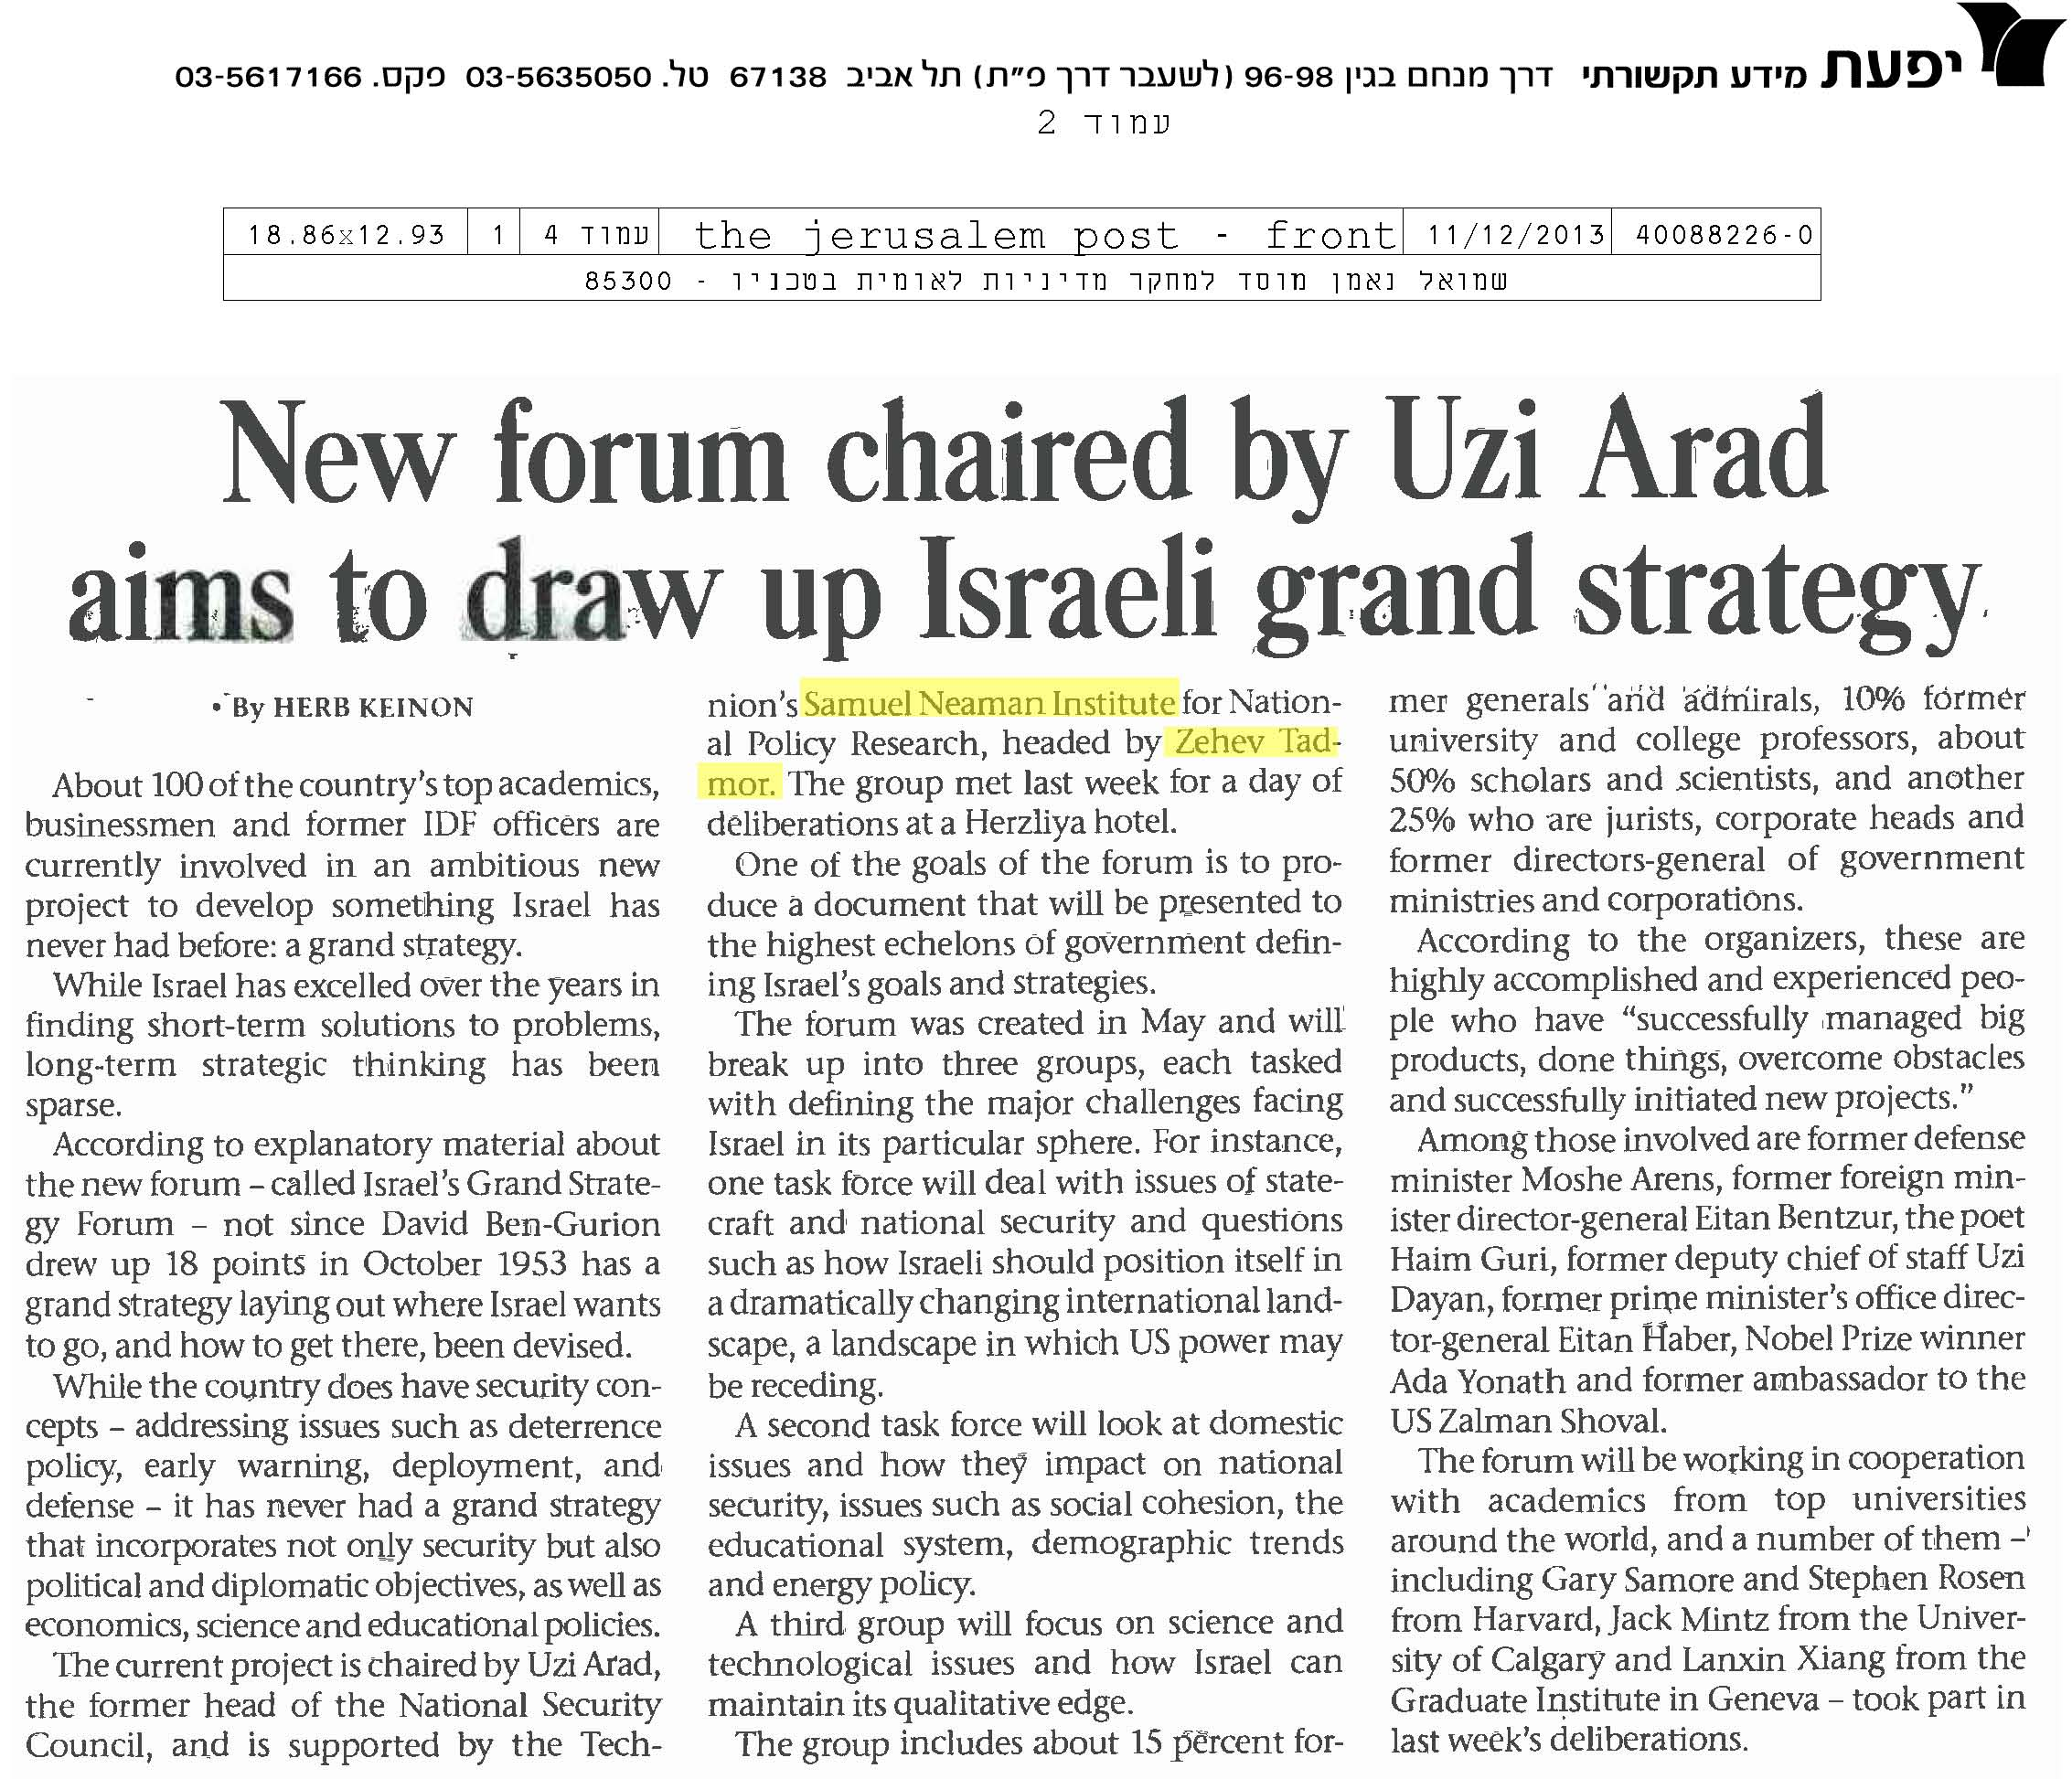 New forum chaired by Uzi Arad aims to draw up Israeli grand strategy